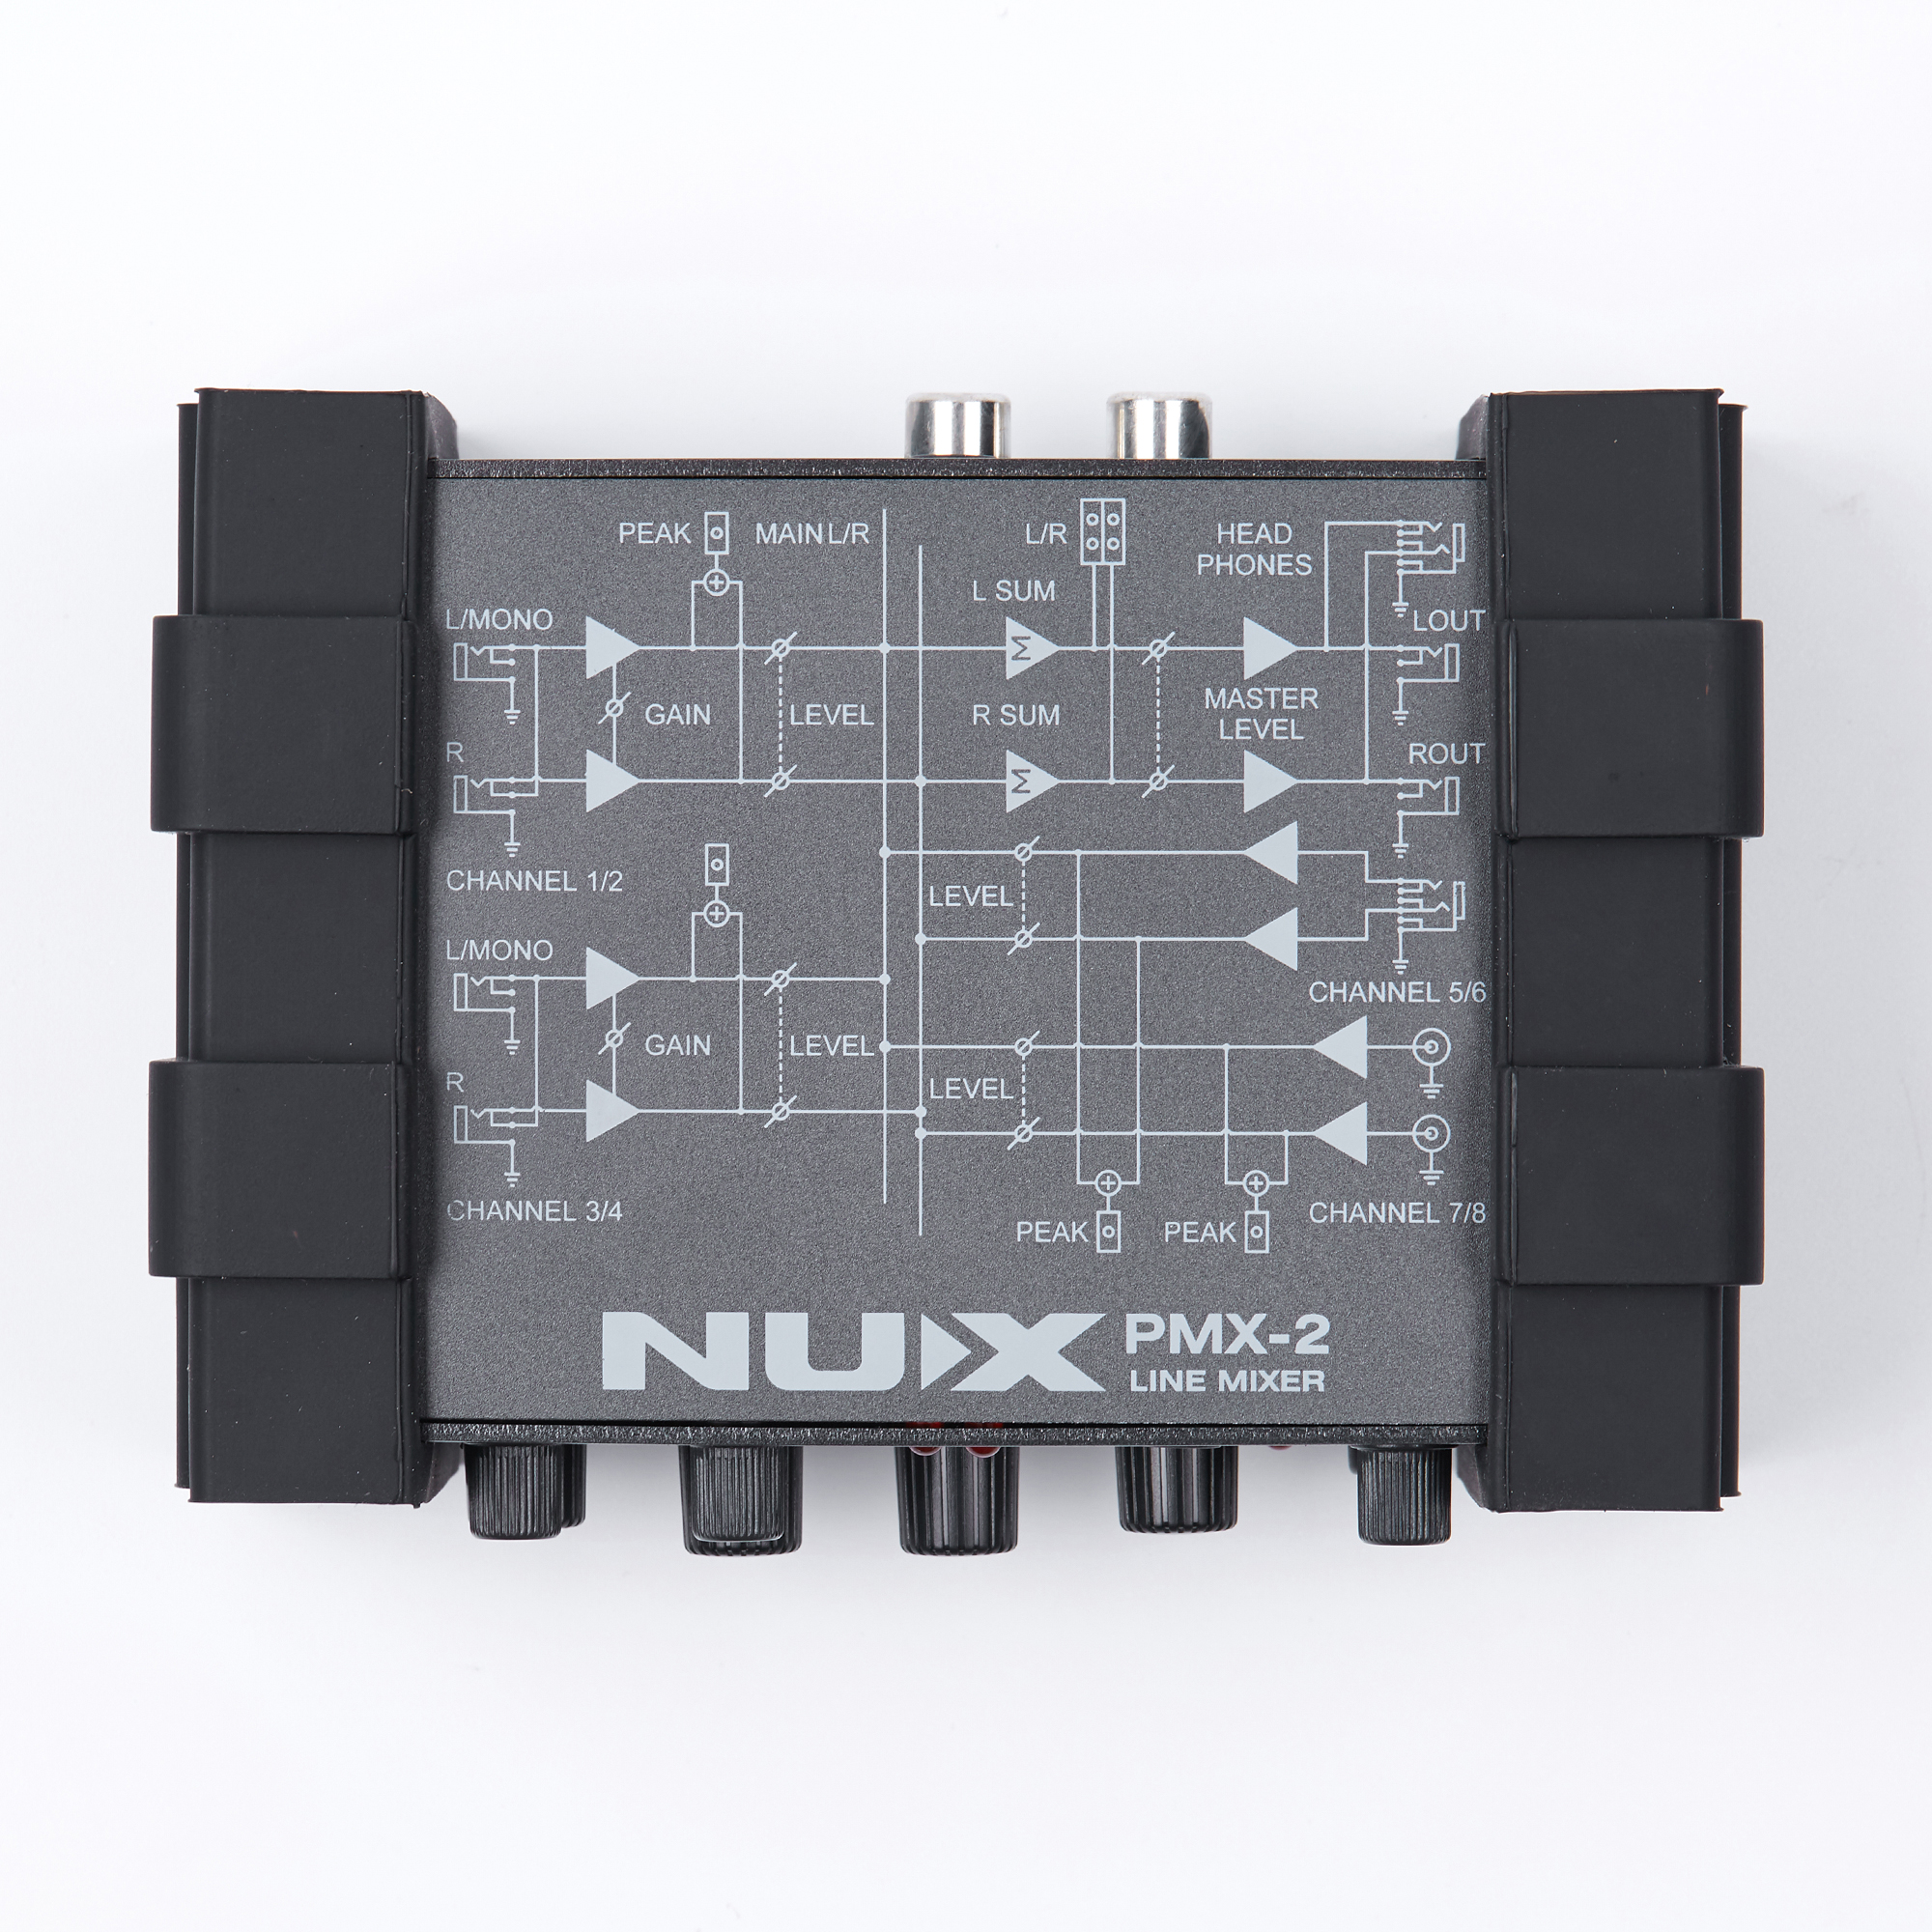 Gain Control 8 Inputs and 2 Outputs NUX PMX-2 Multi-Channel Mini Mixer 30 Musical Instruments Accessories for Guitar Bass Player performance appraisal system in the macedonian civil service